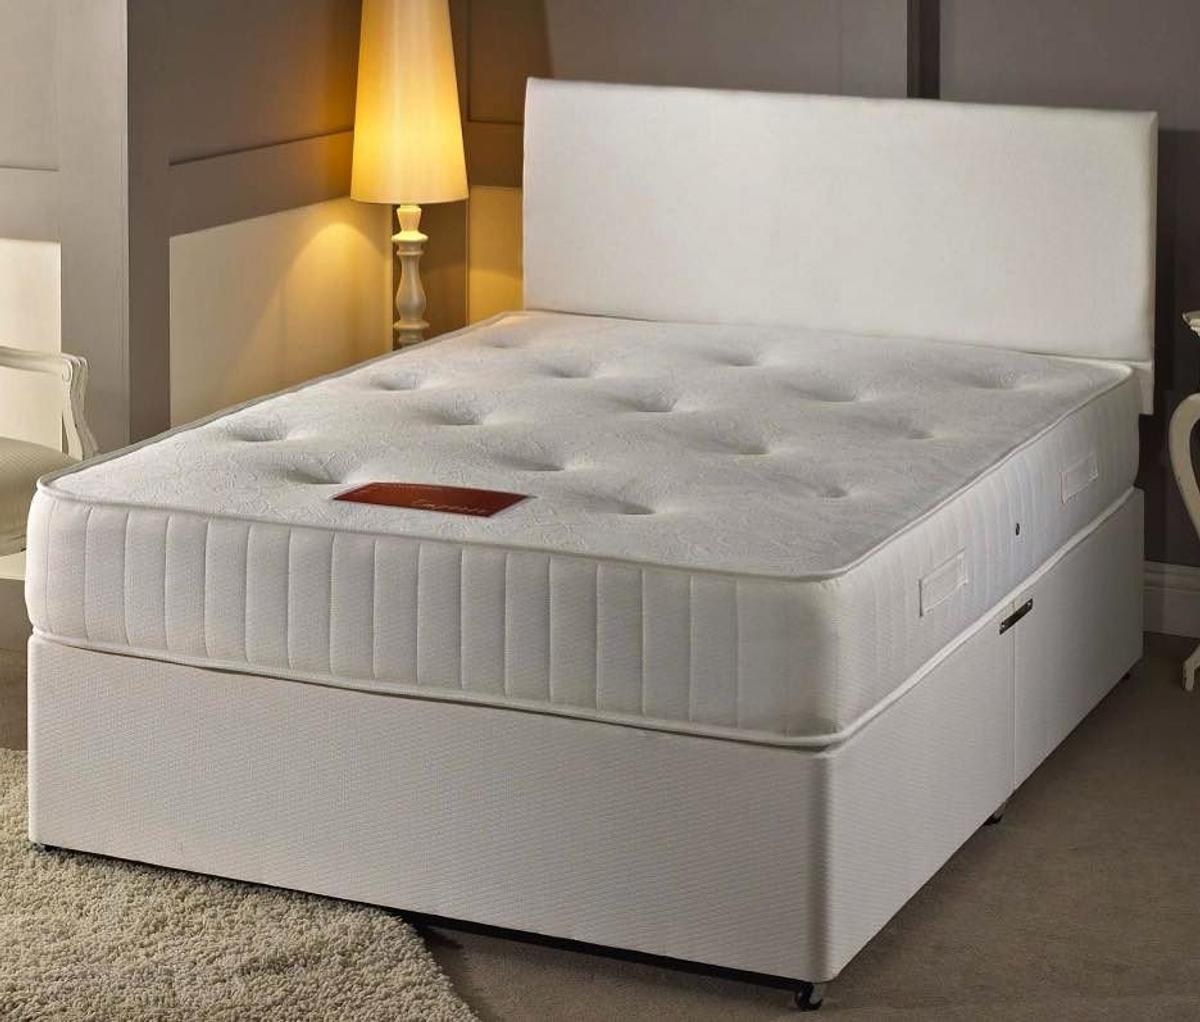 Picture of: Brand New White Leather Divan Beds On Sale In B1 Birmingham For 100 00 For Sale Shpock